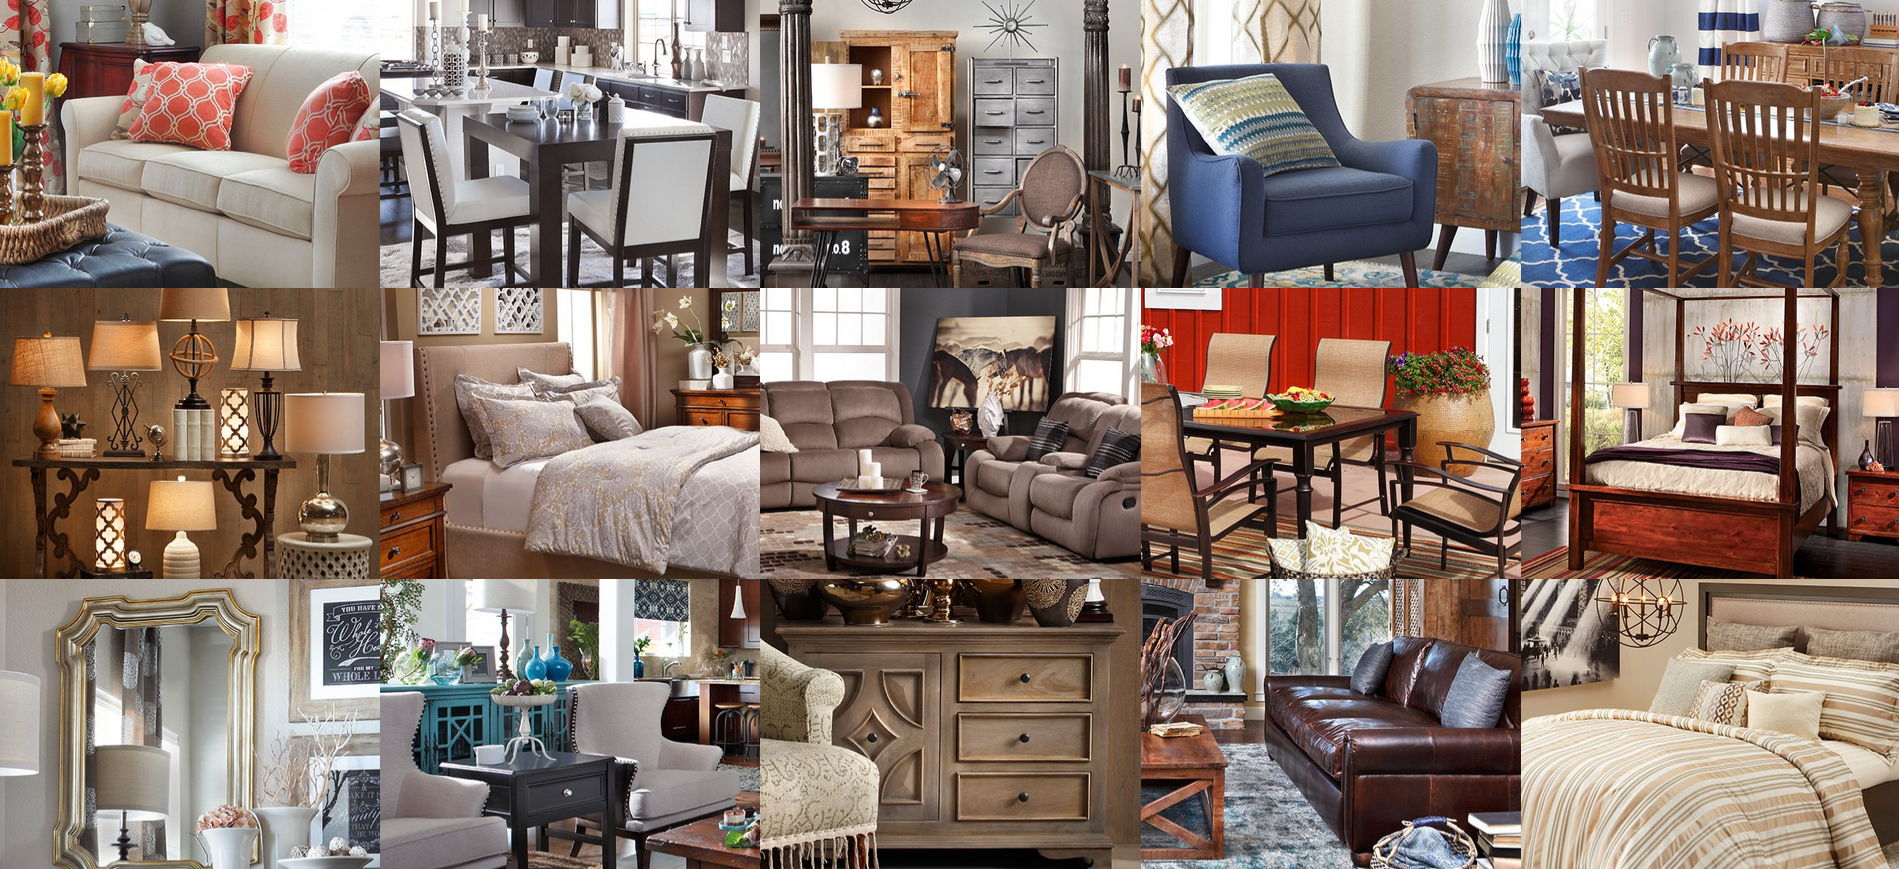 Furniture row center in grand junction co whitepages Home decor stores utah county